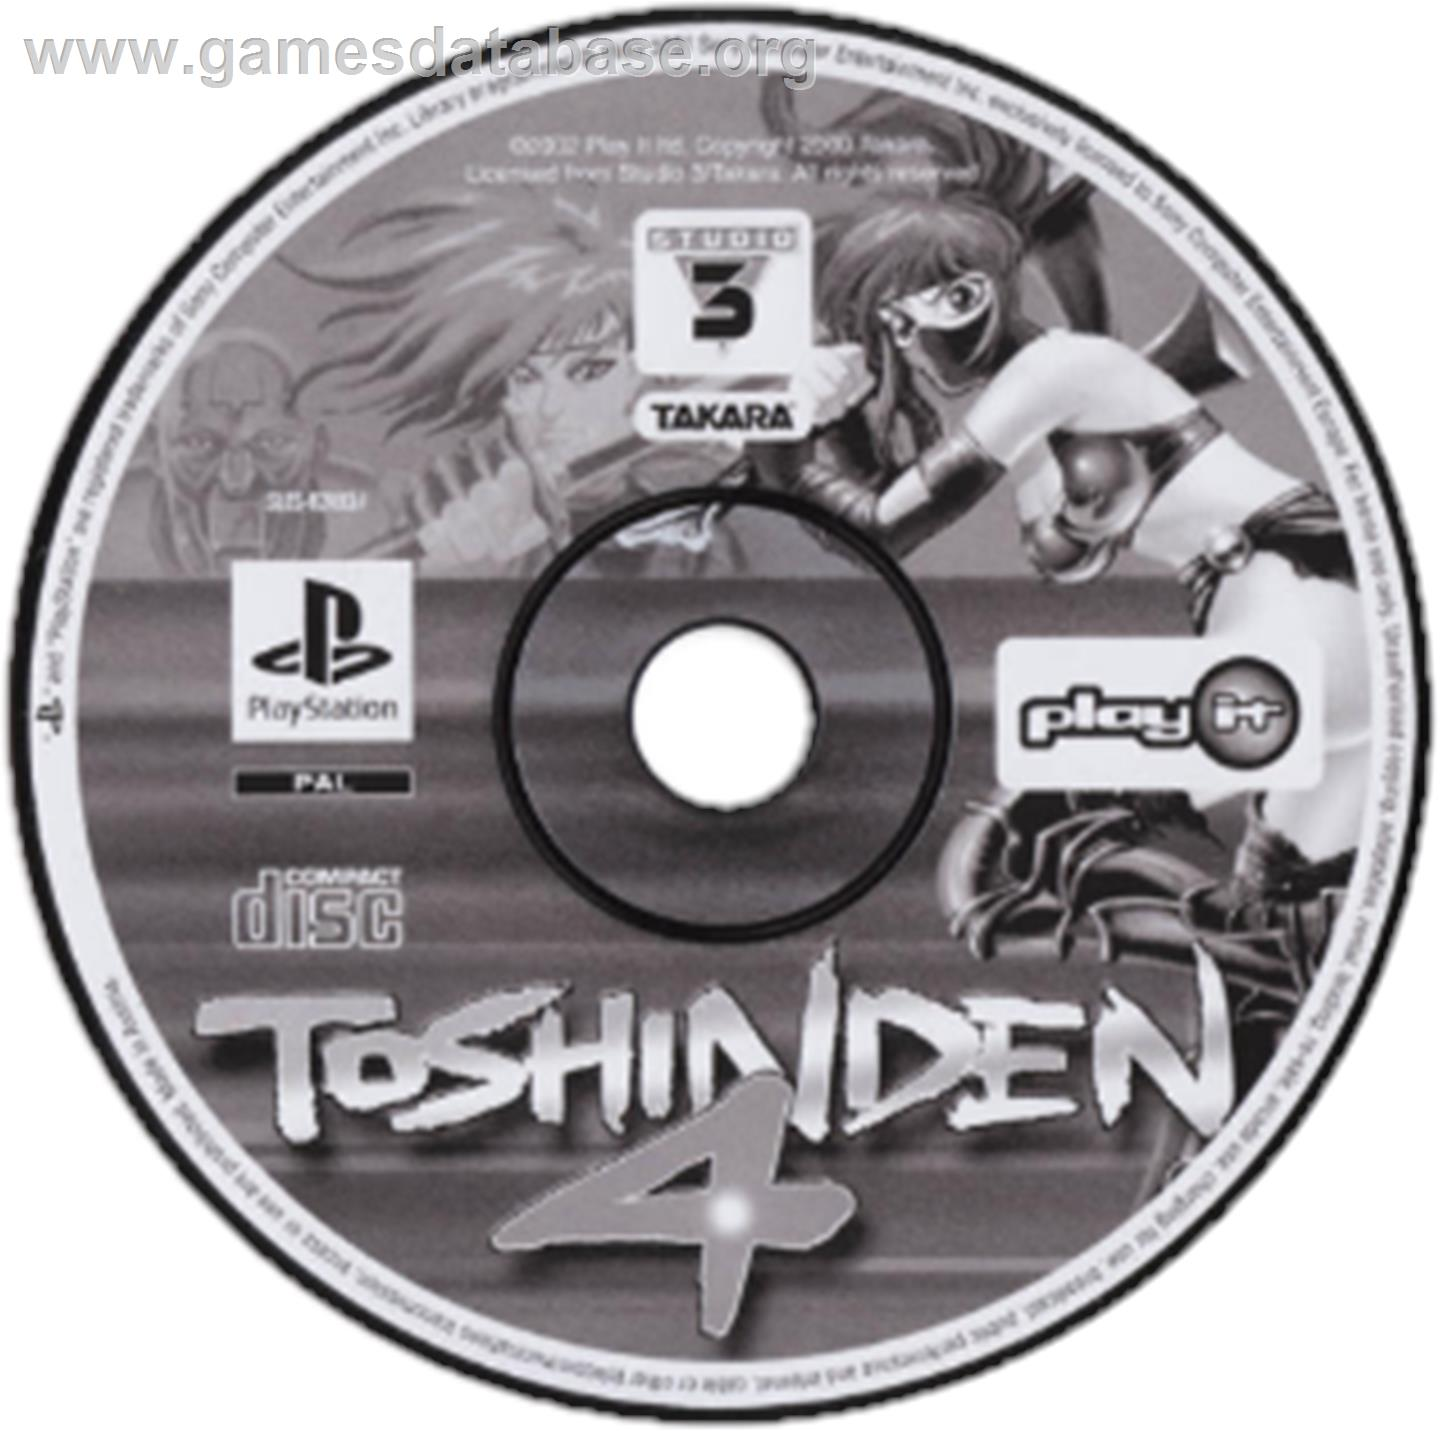 Battle Arena Toshinden 4 - Sony Playstation - Artwork - CD